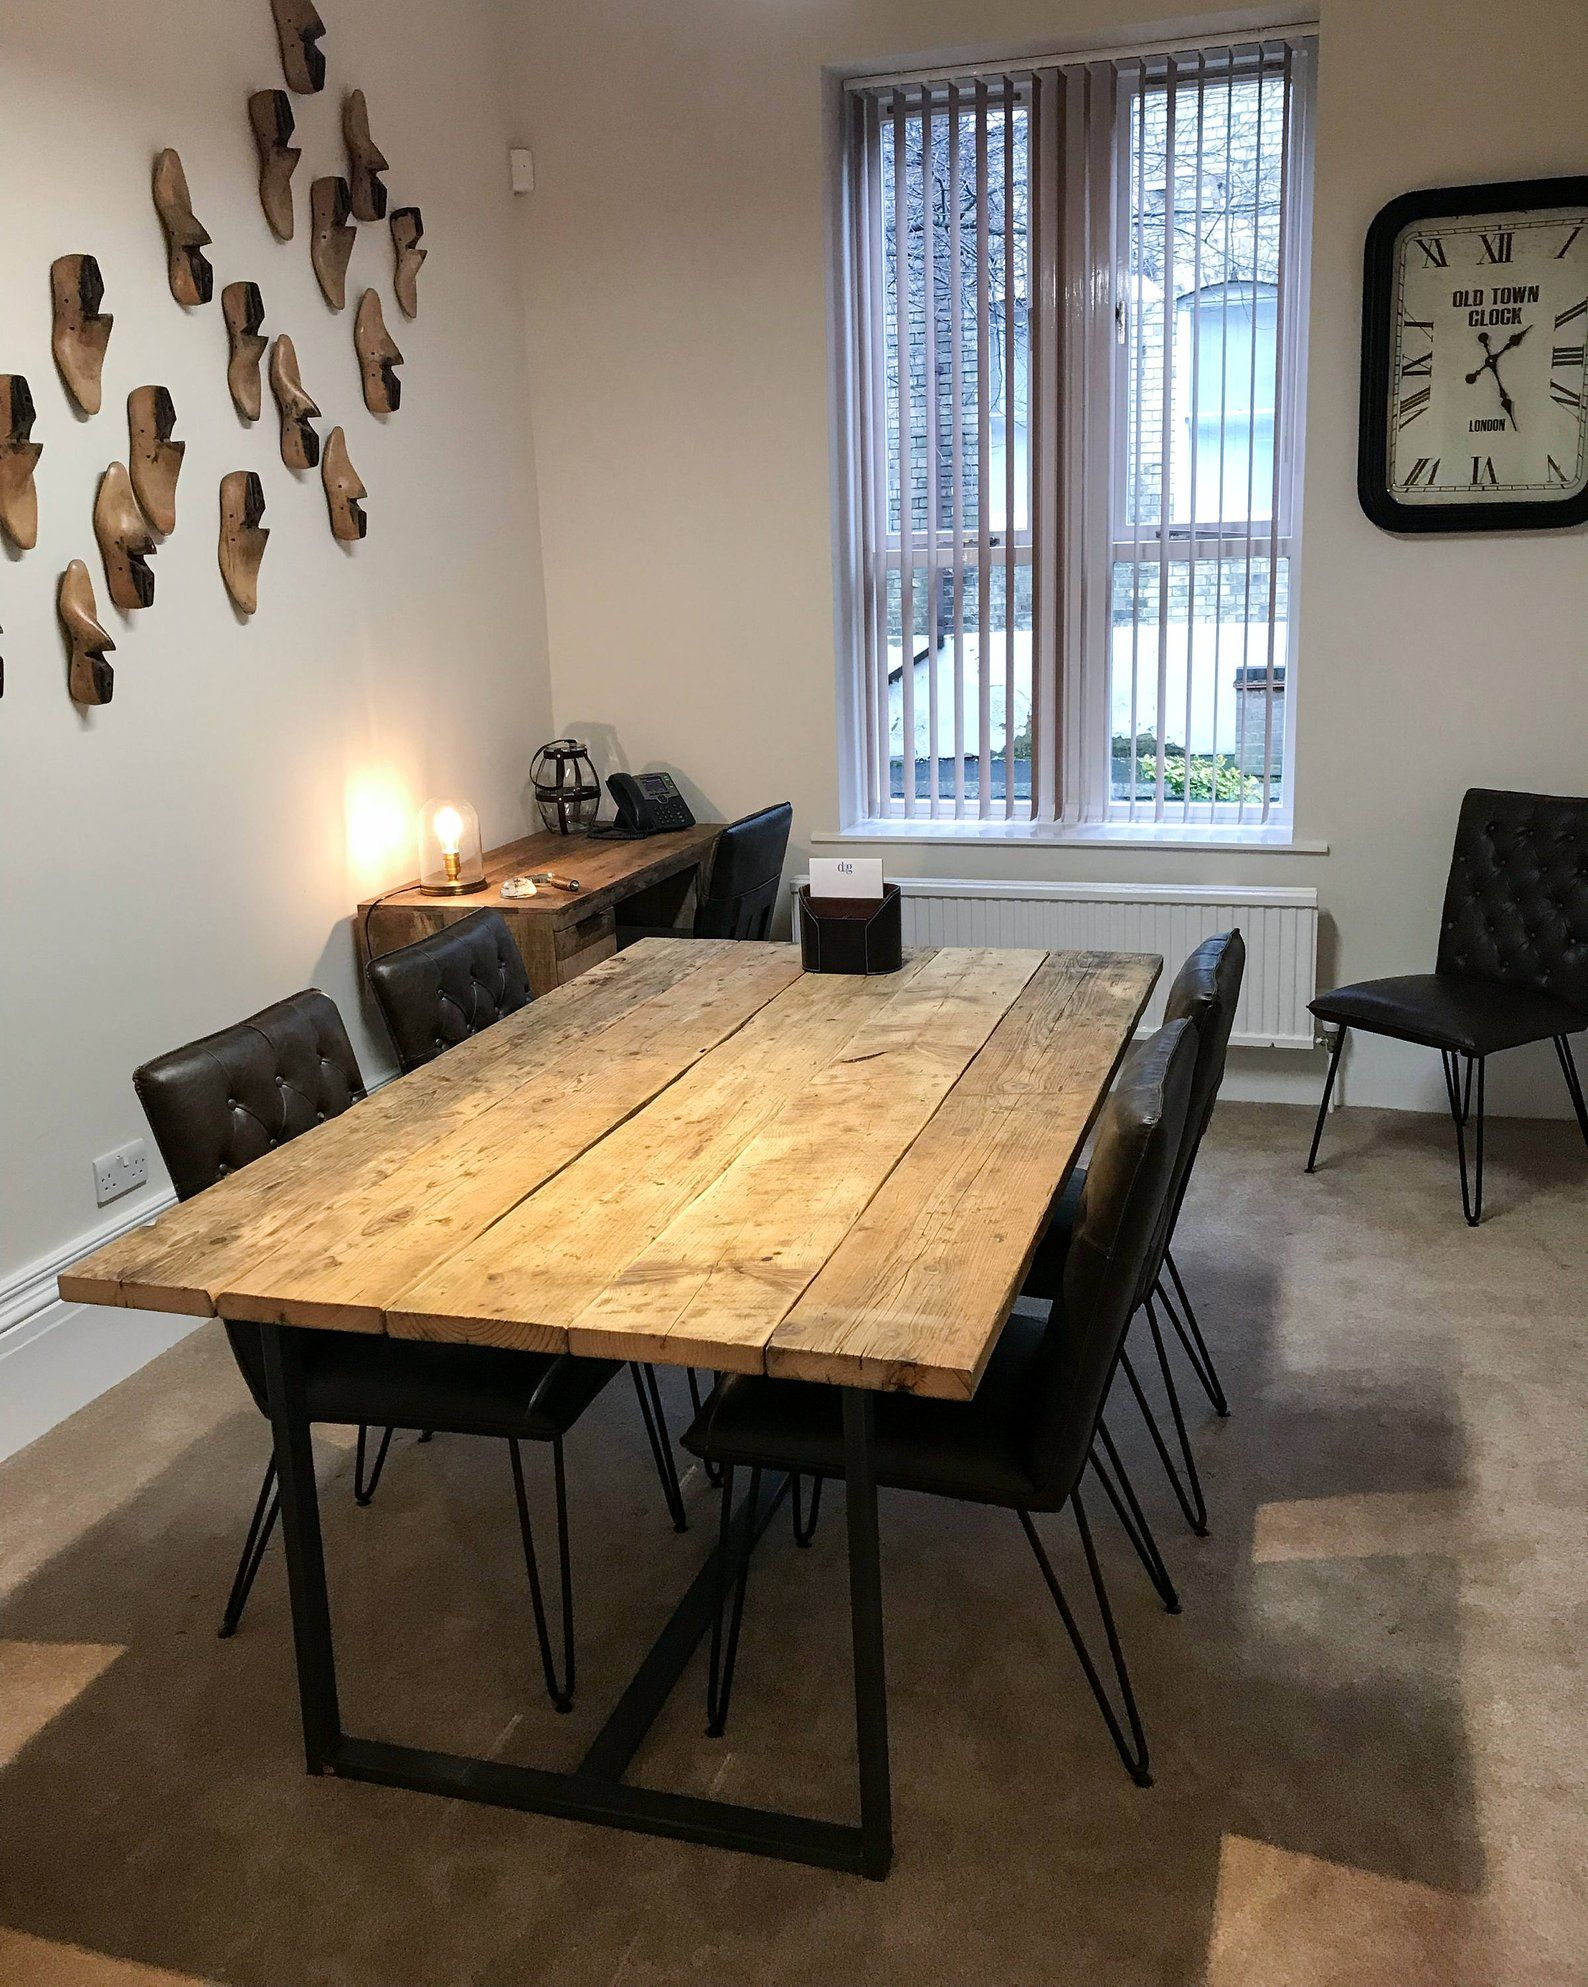 Meeting Room Rustic Table Made From Scaffold Boards Steel Etsy In 2020 Rustic Table Dining Table Table